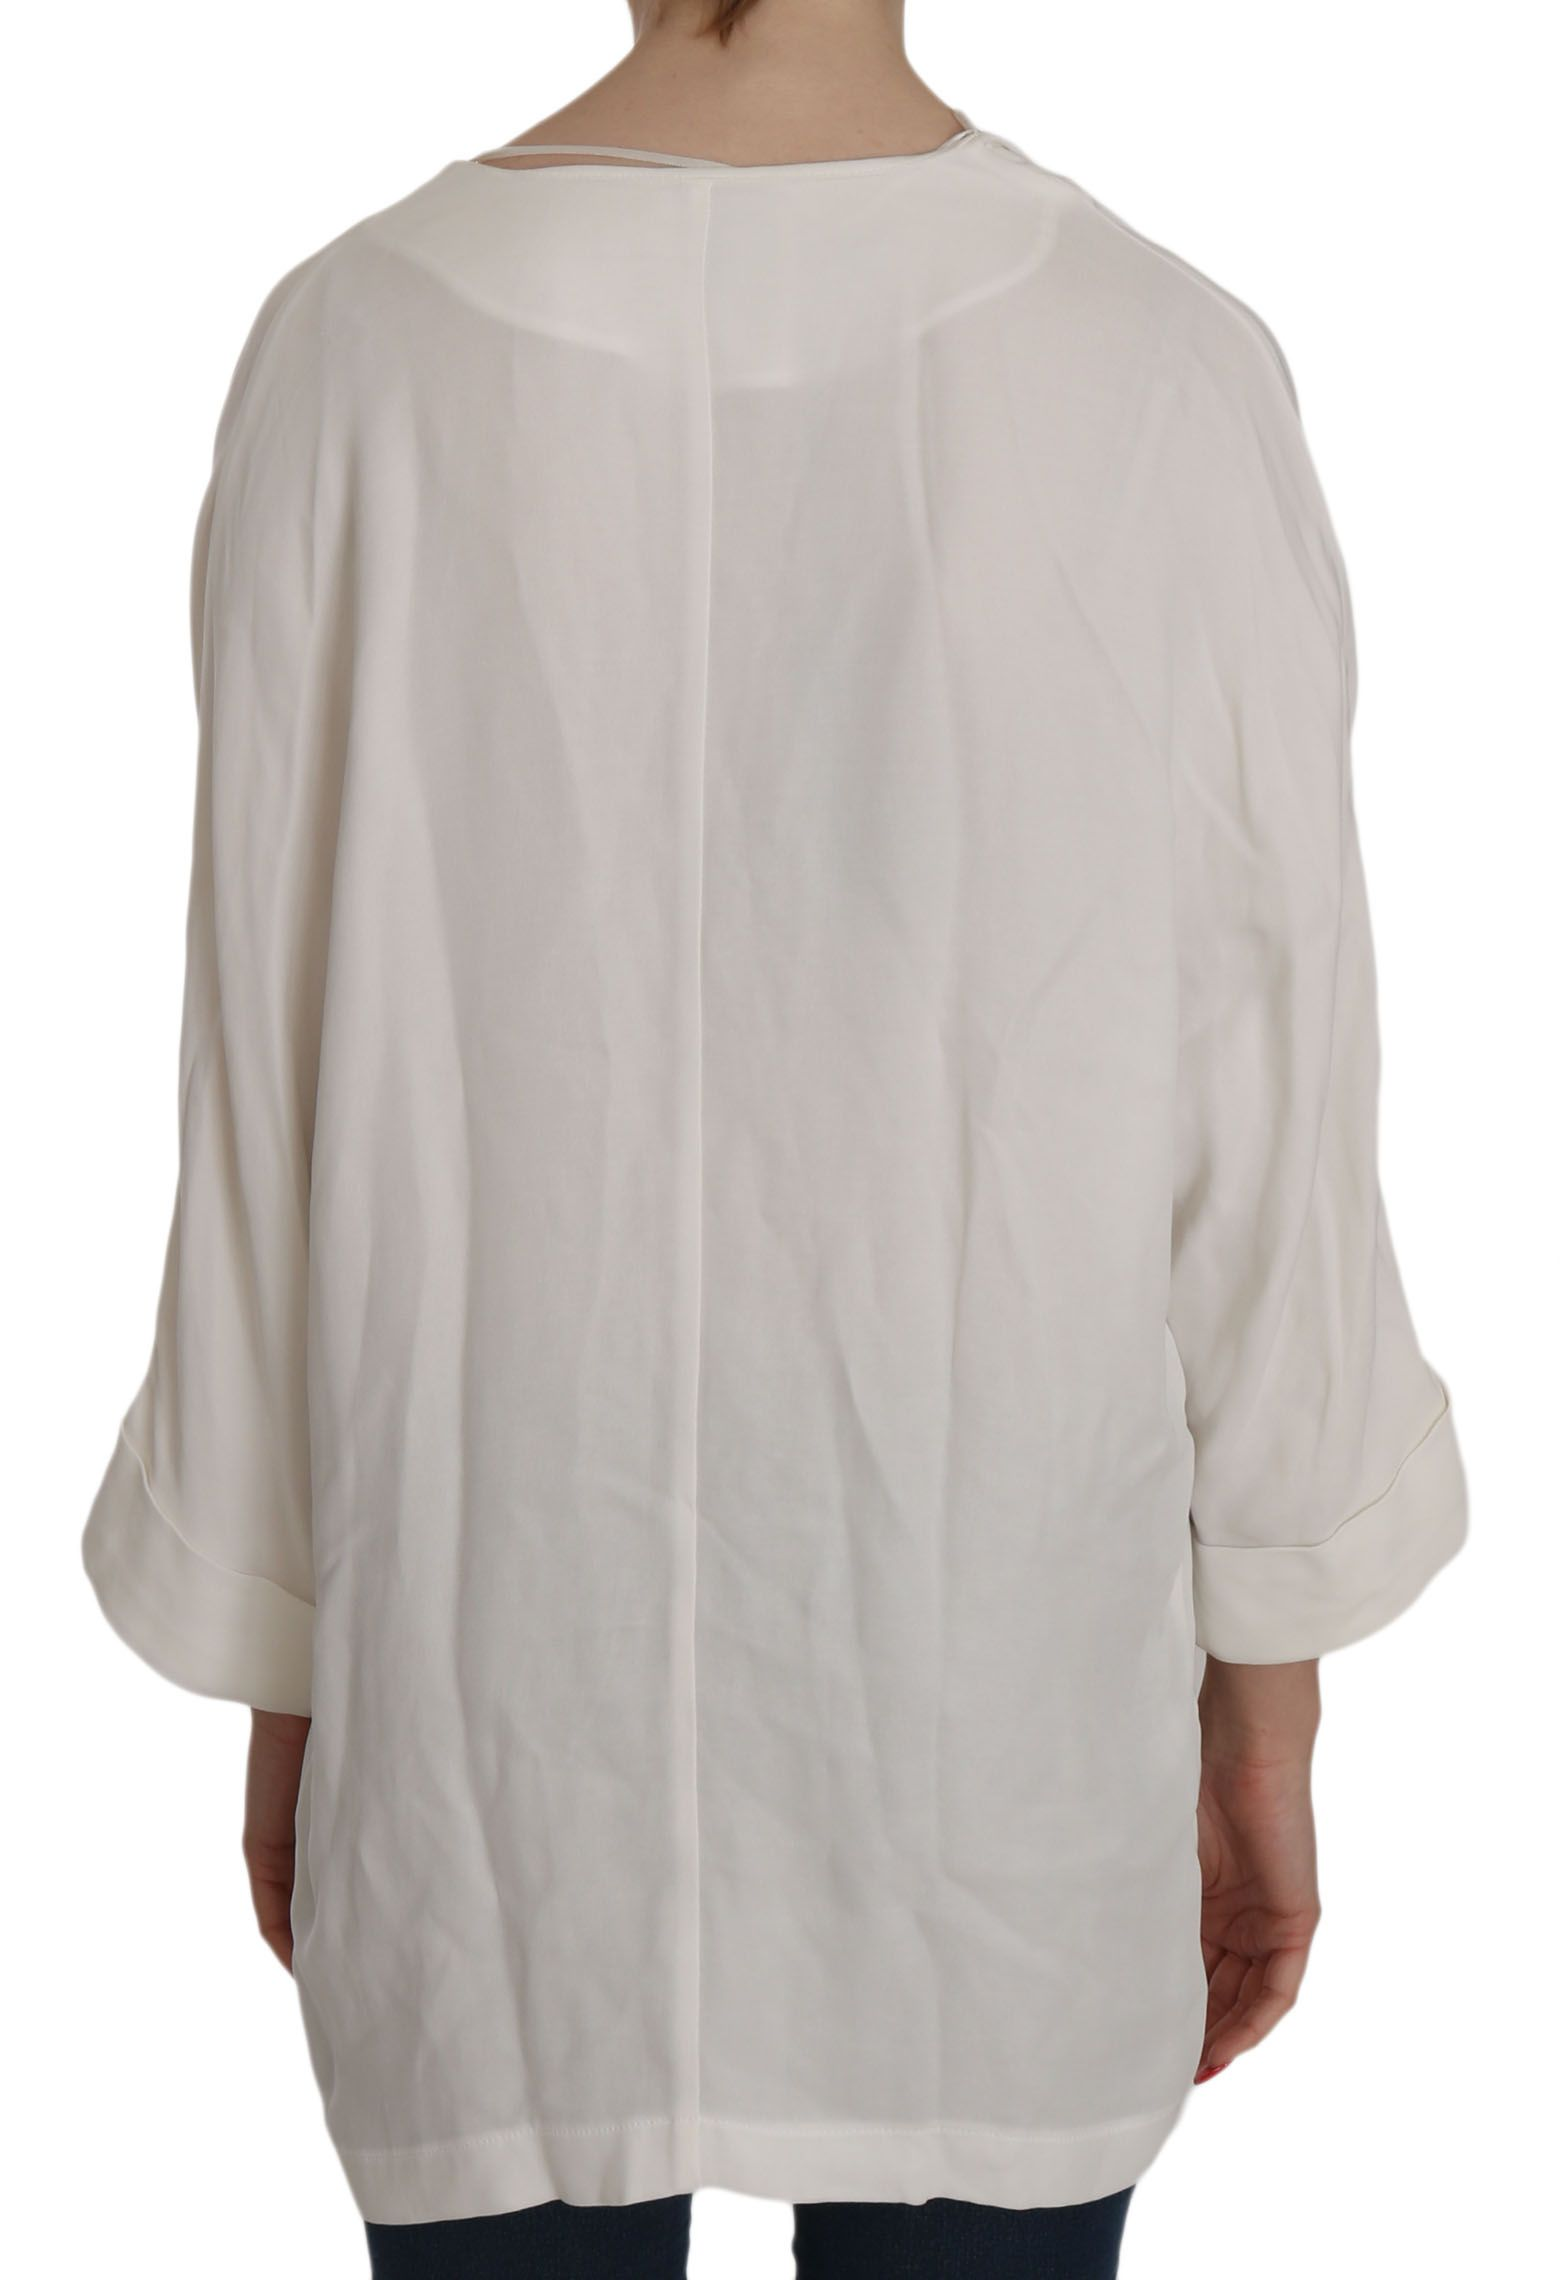 PINKO White Folded Long Sleeve Cardigan Deep Neck Blouse